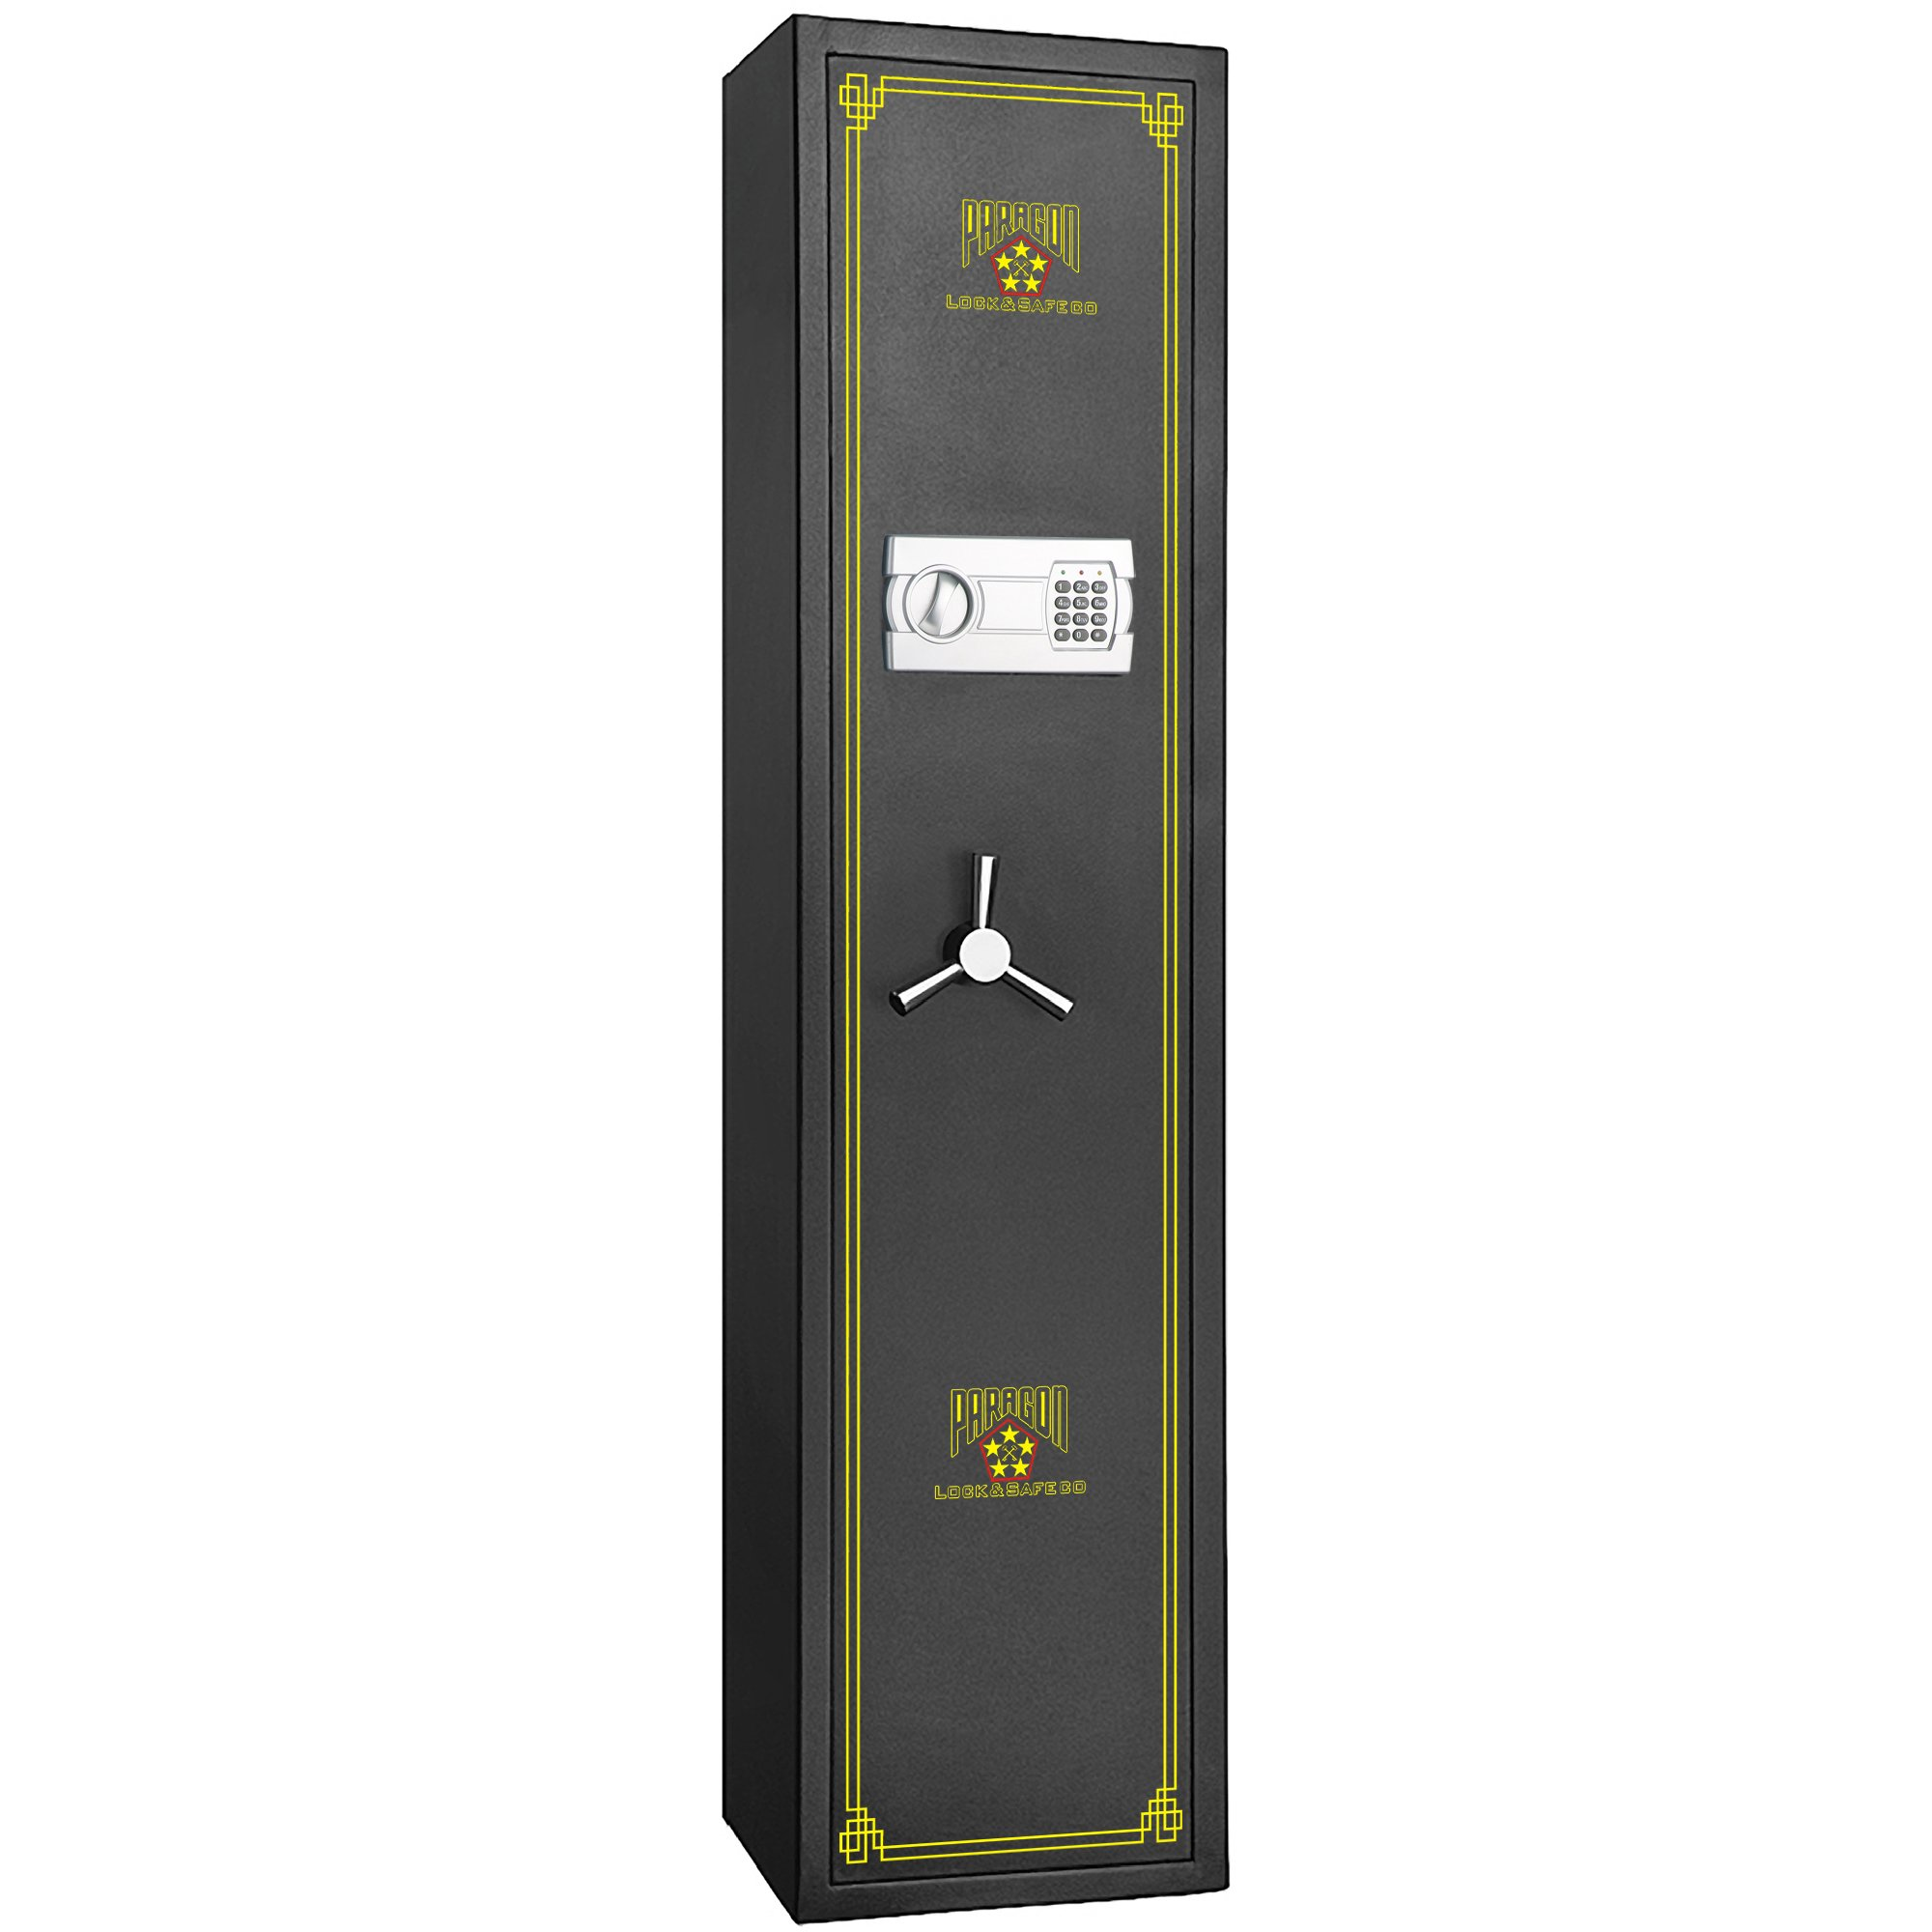 7501 Paragon Lock & Safe Electronic 5 Gun Rifle Safe  4.26cf Gun Cabinet for Firearms by Paragon Lock and Safe